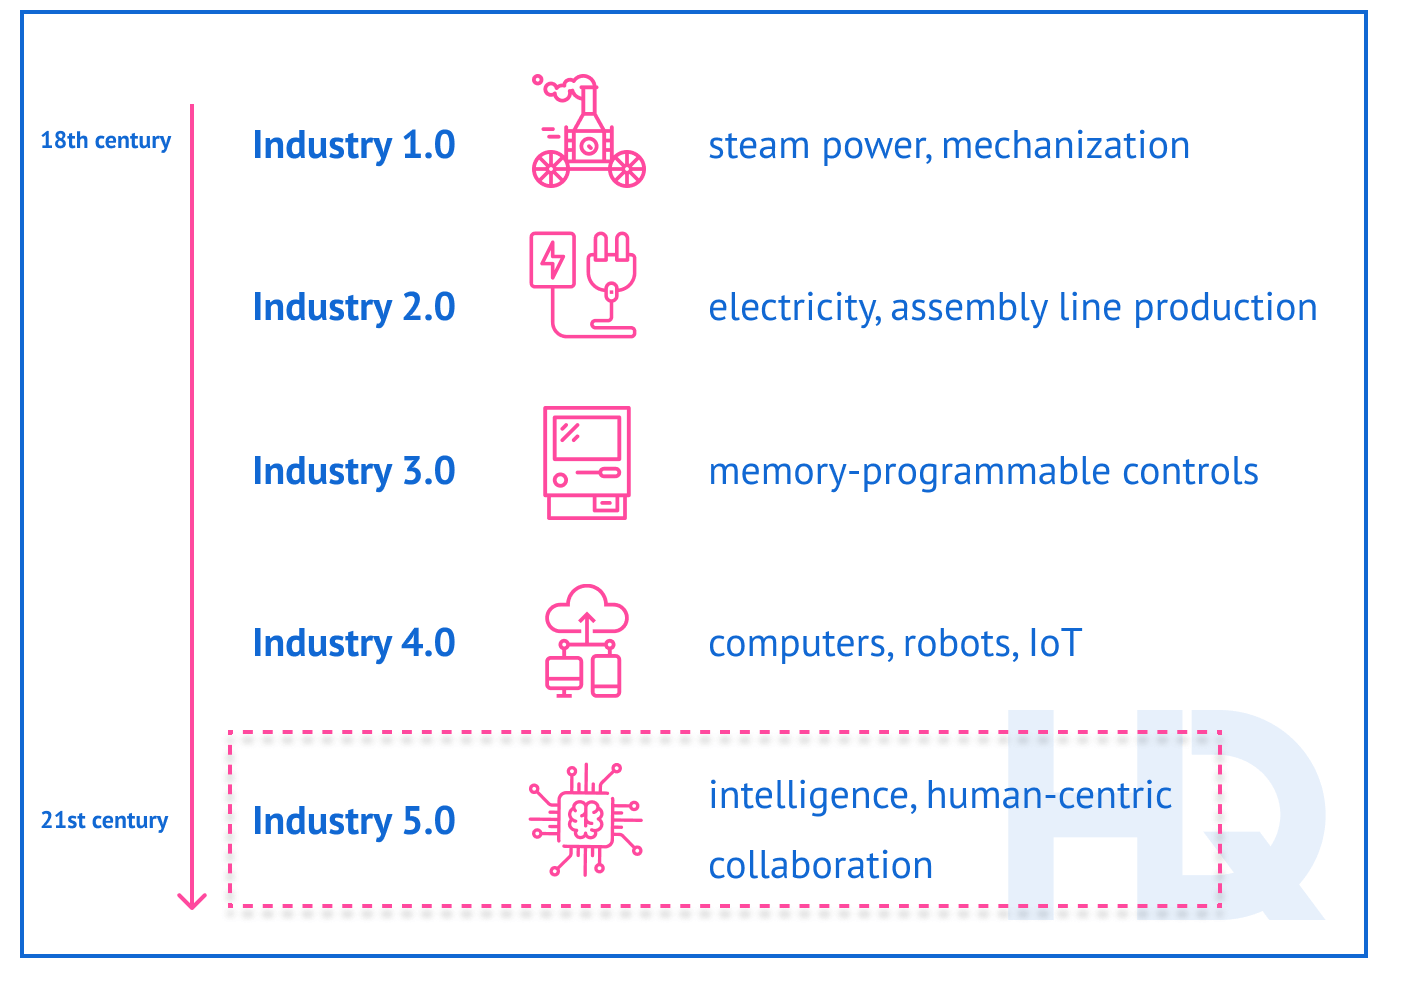 The history of industrial revolutions from Industry 1.0 to Industry 5.0.